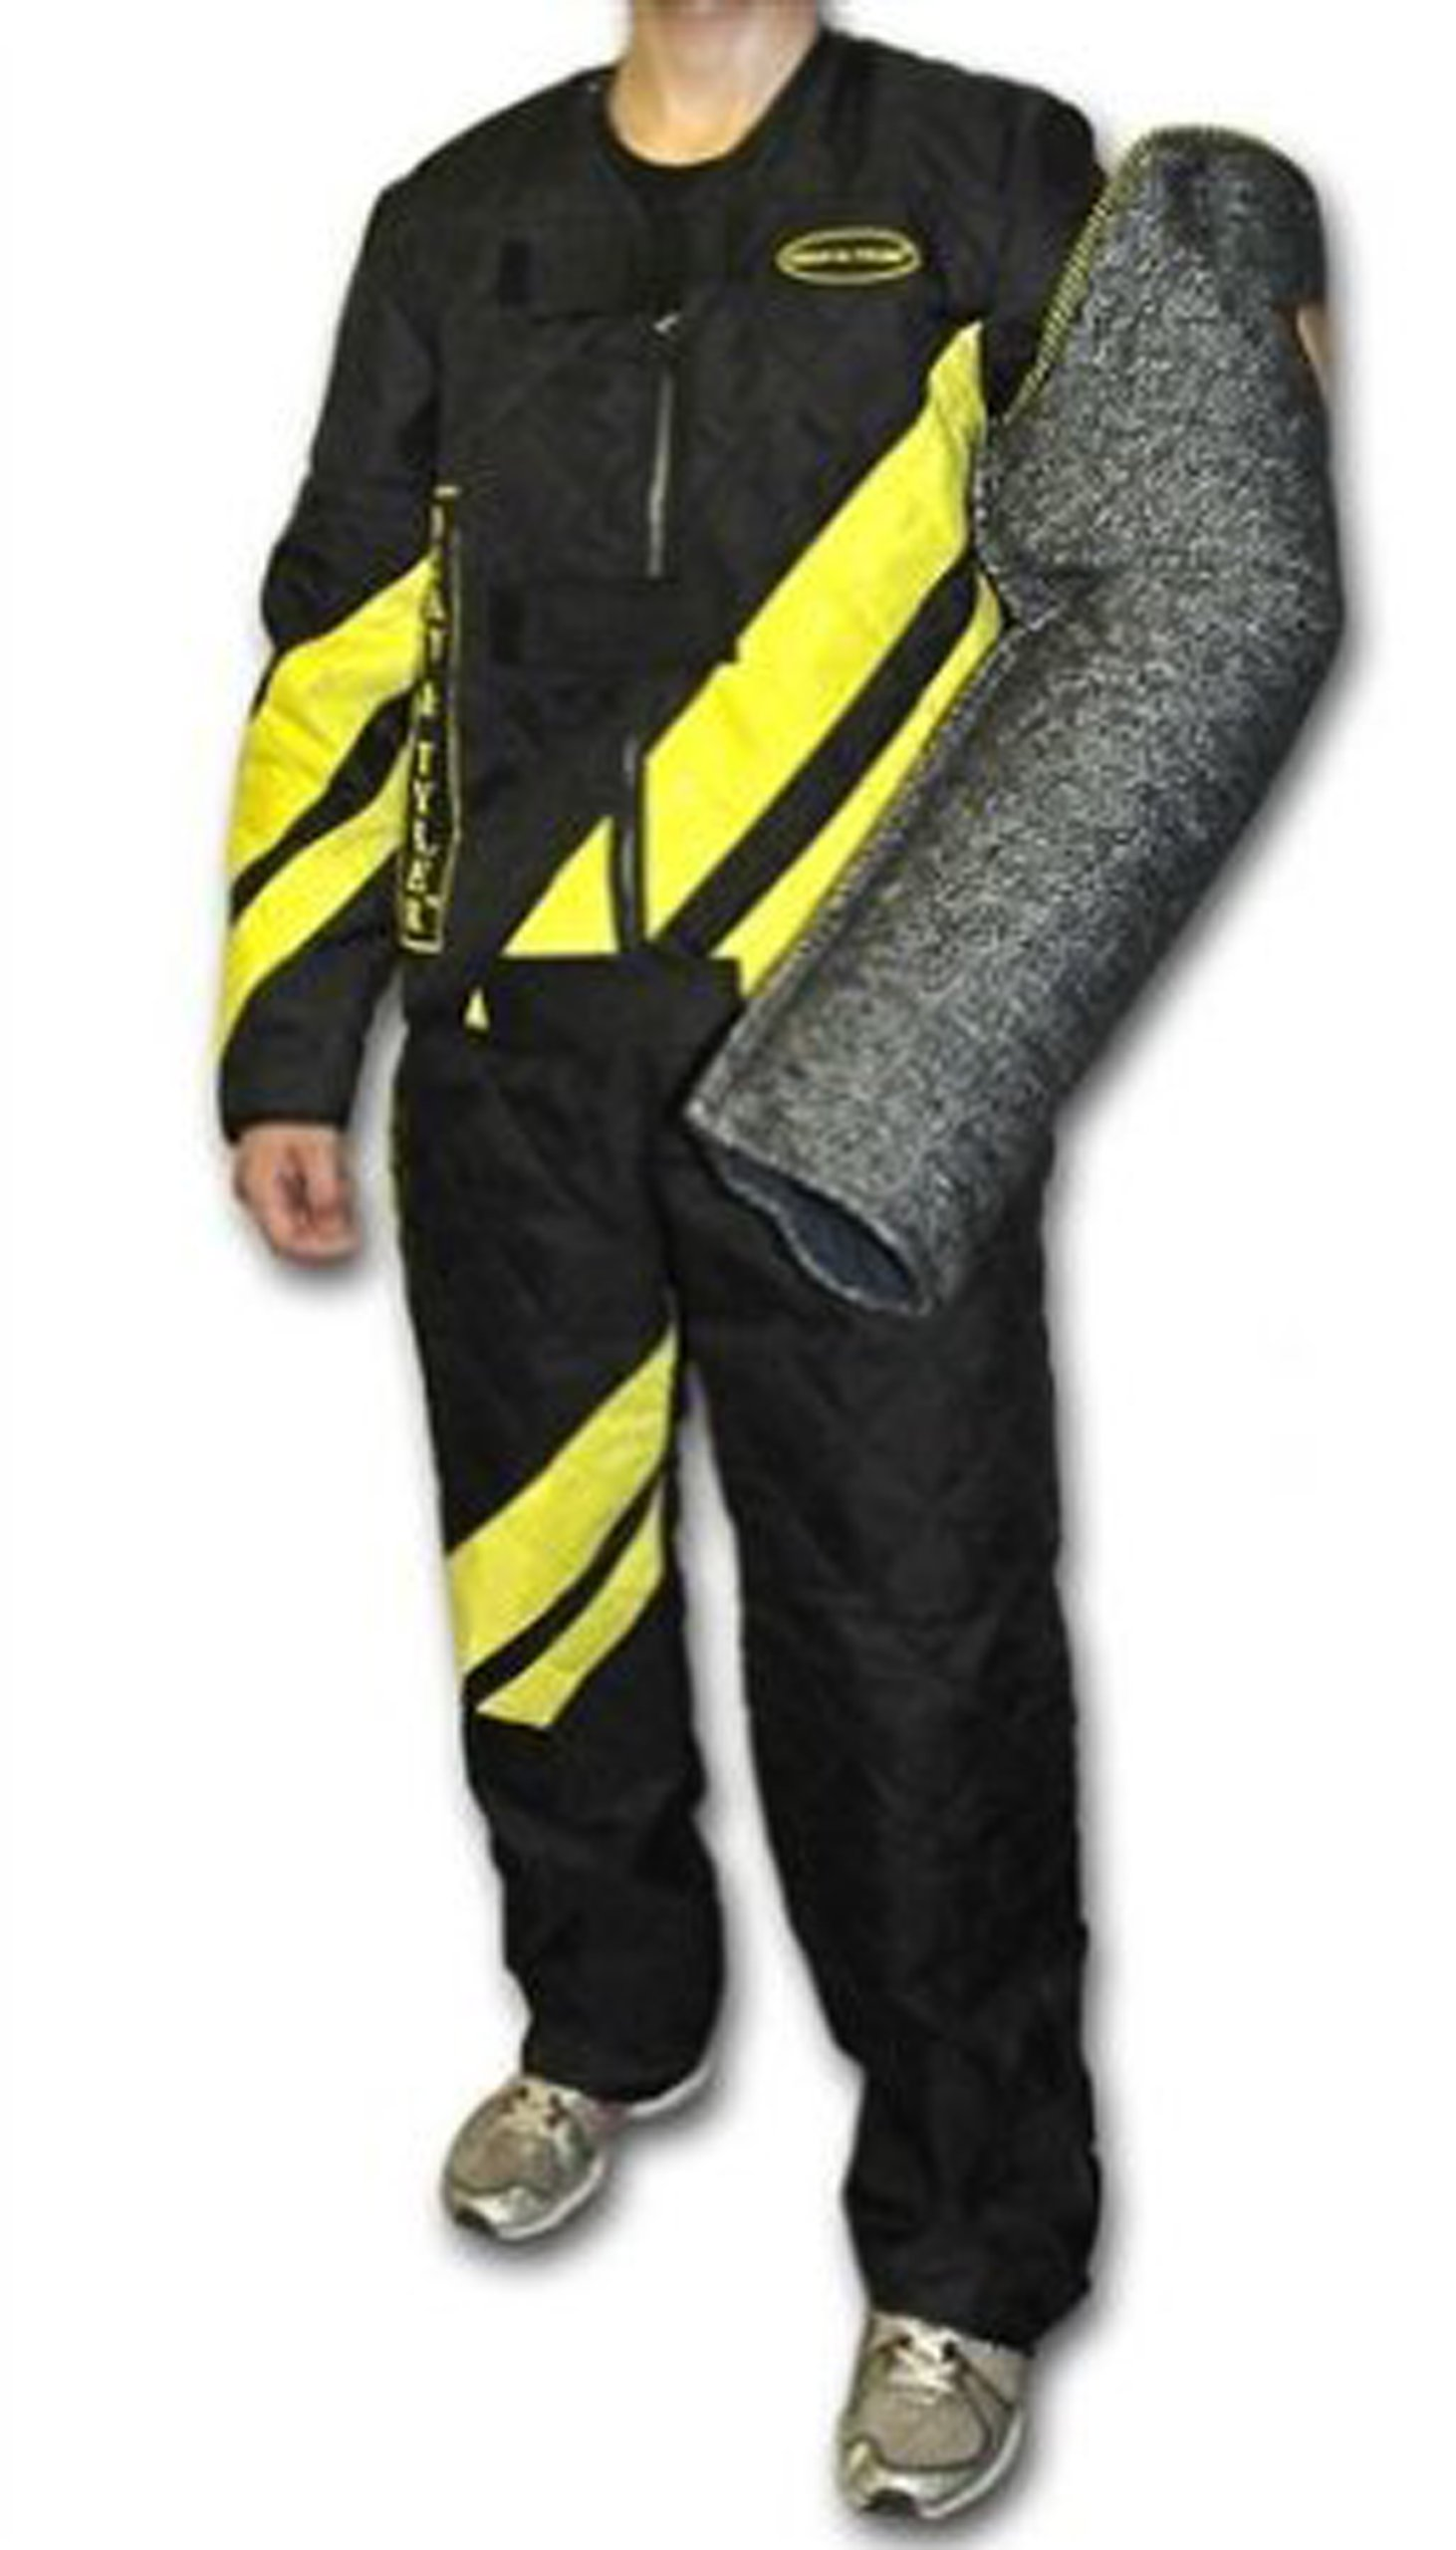 Dean and Tyler Scratch Suit, Neoprene Nylon - Black/Yellow - Size: Large (J: 42-Inch, P: 36-Inch)